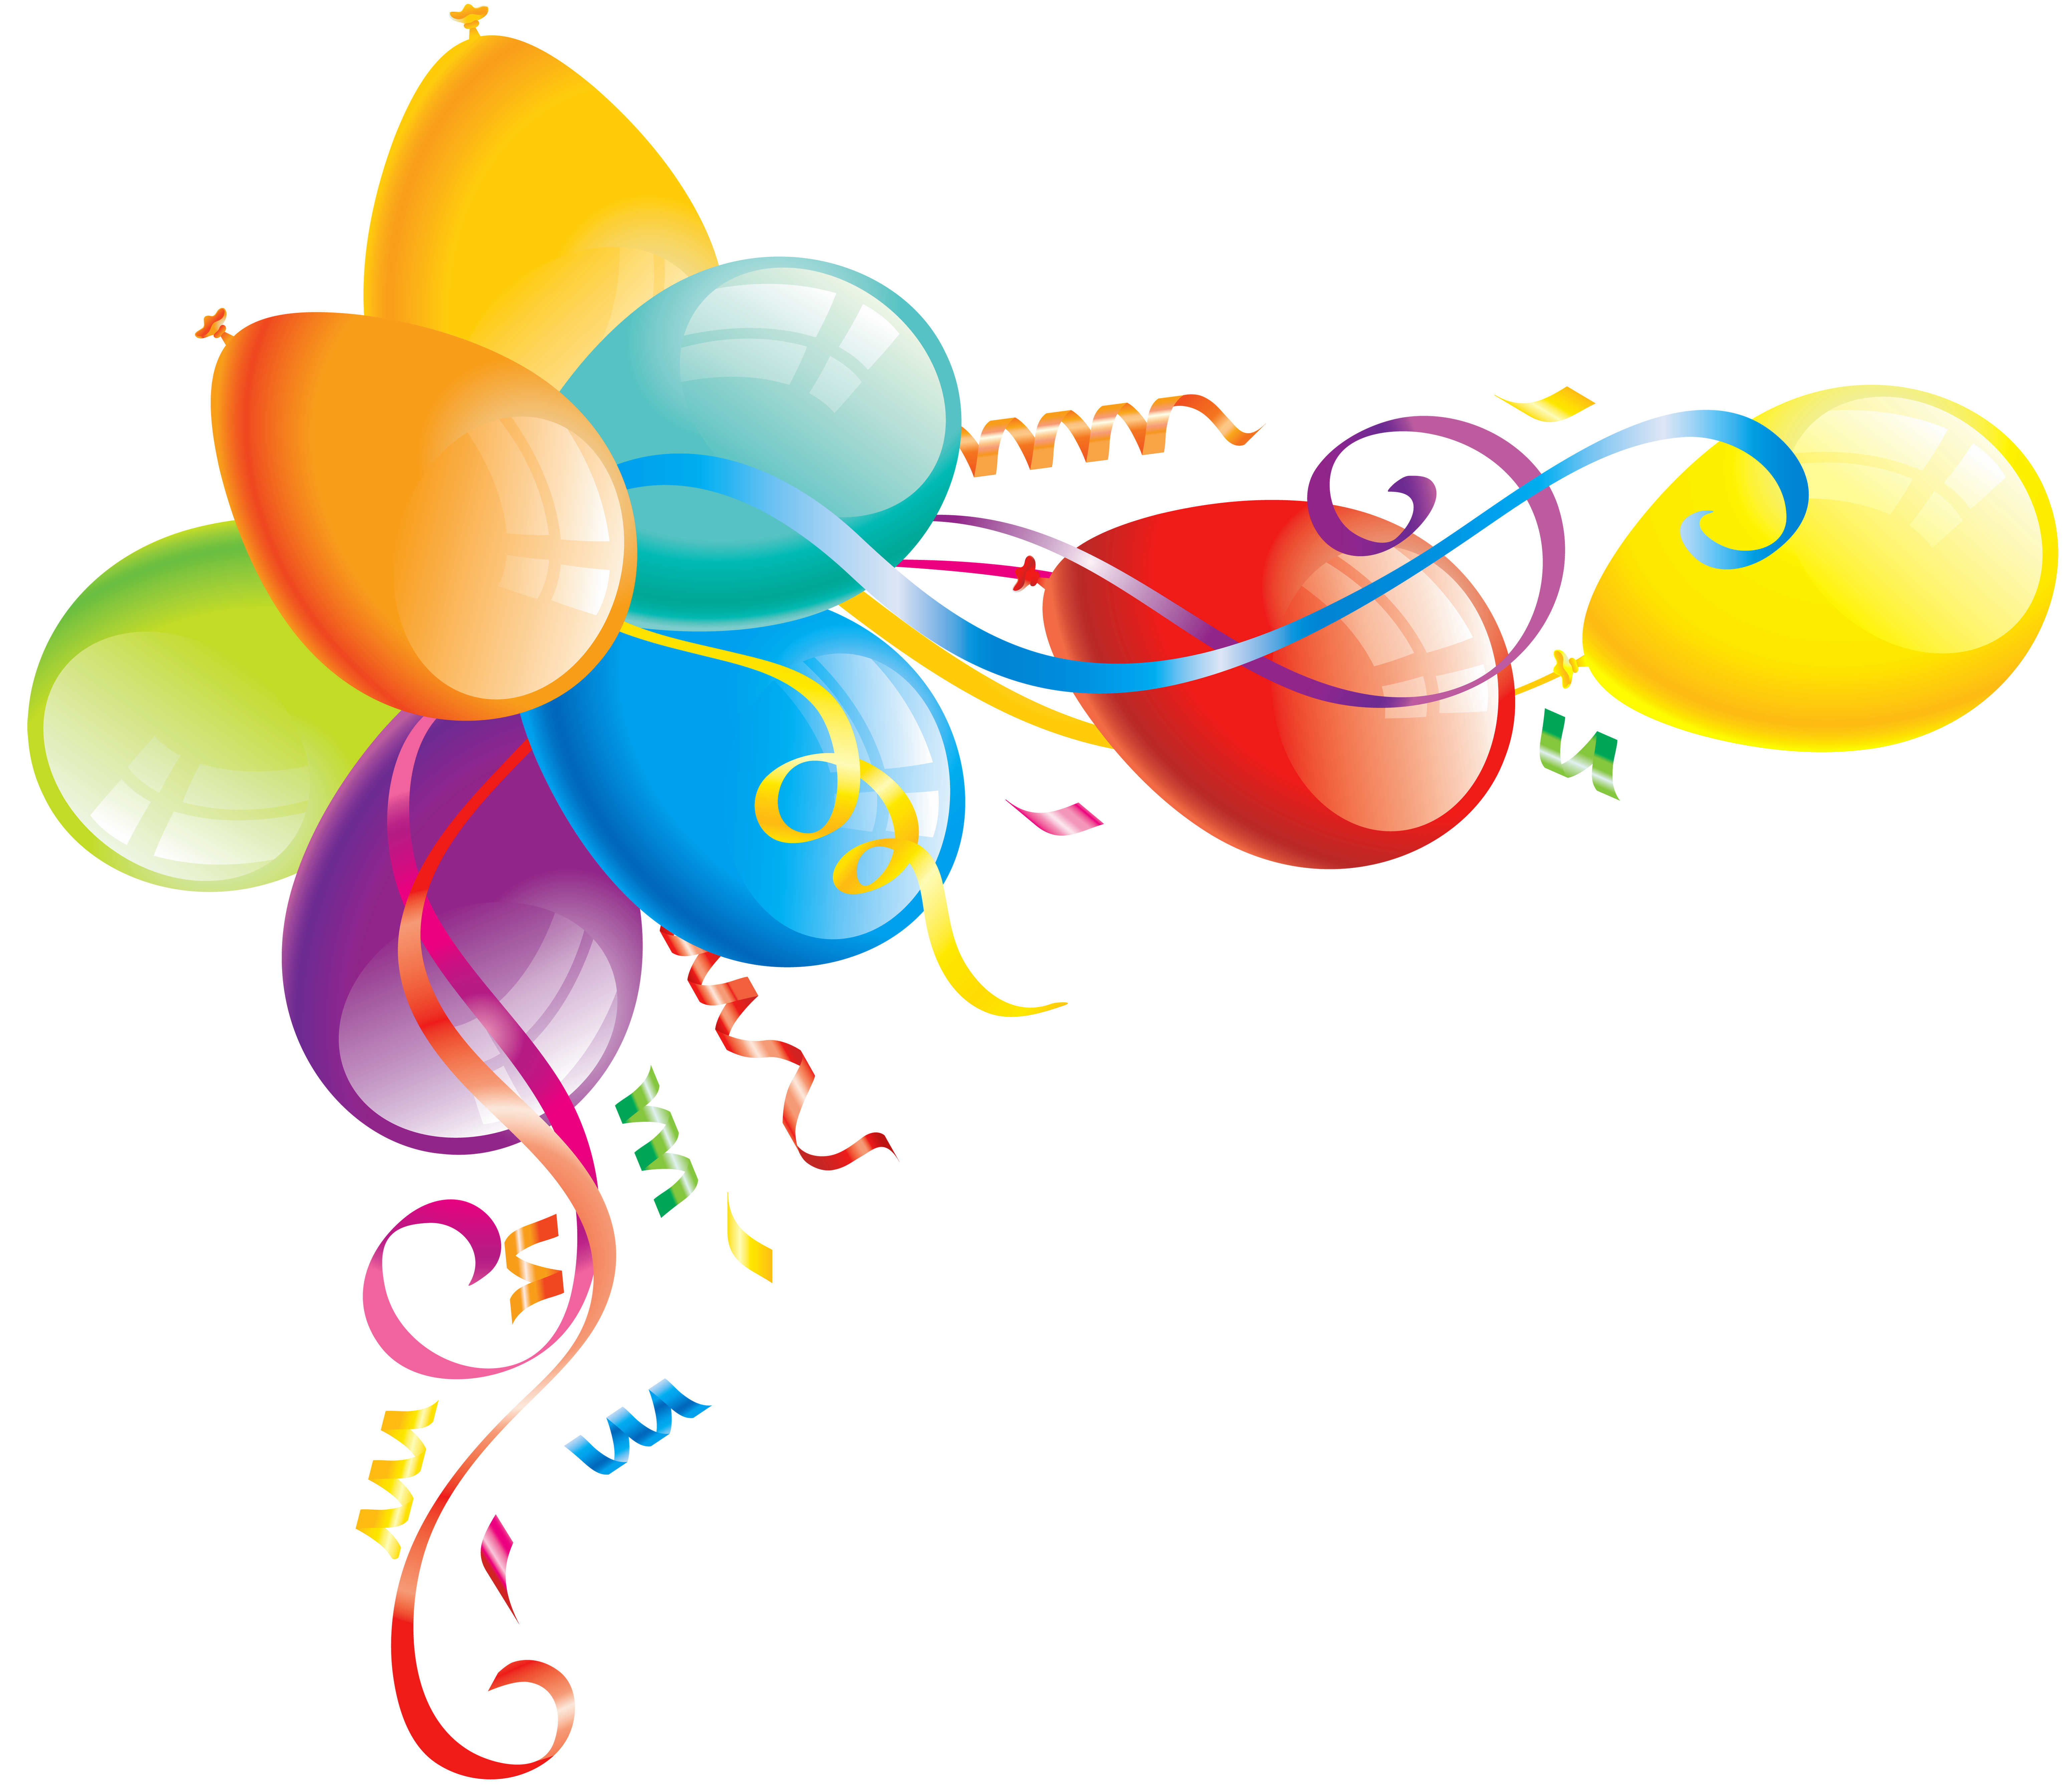 Garland clipart balloon, Garland balloon Transparent FREE.